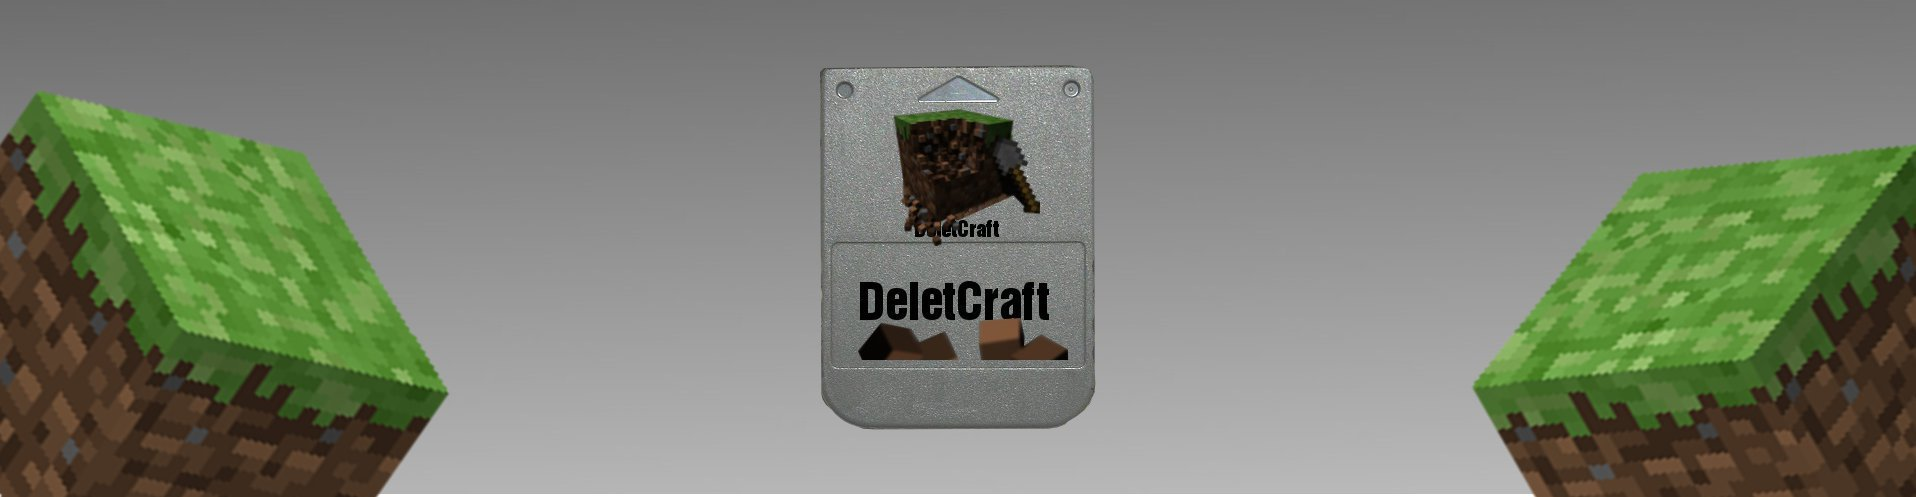 DeletCraft Index du Forum